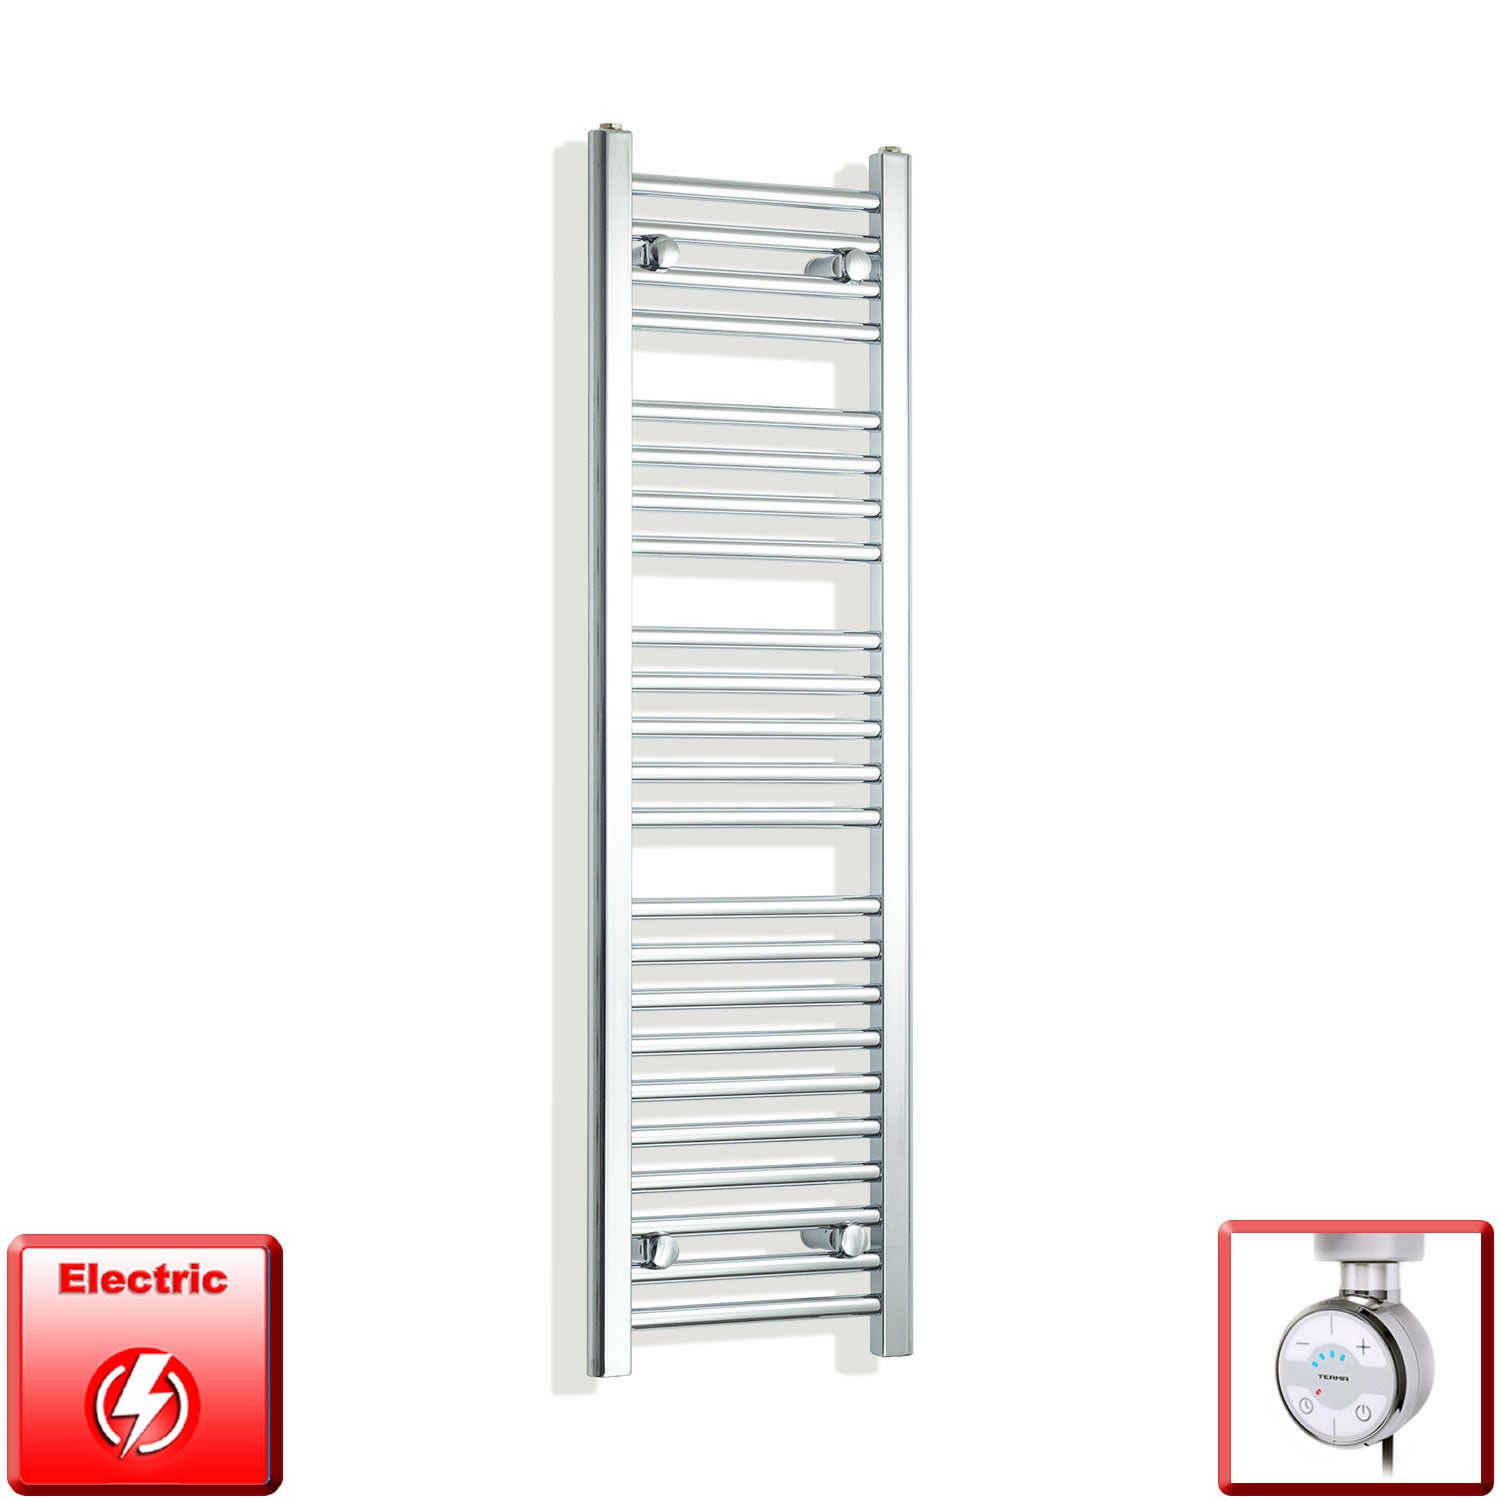 350mm Wide 1200mm High Pre-Filled Chrome Electric Towel Rail Radiator With Thermostatic MOA Element